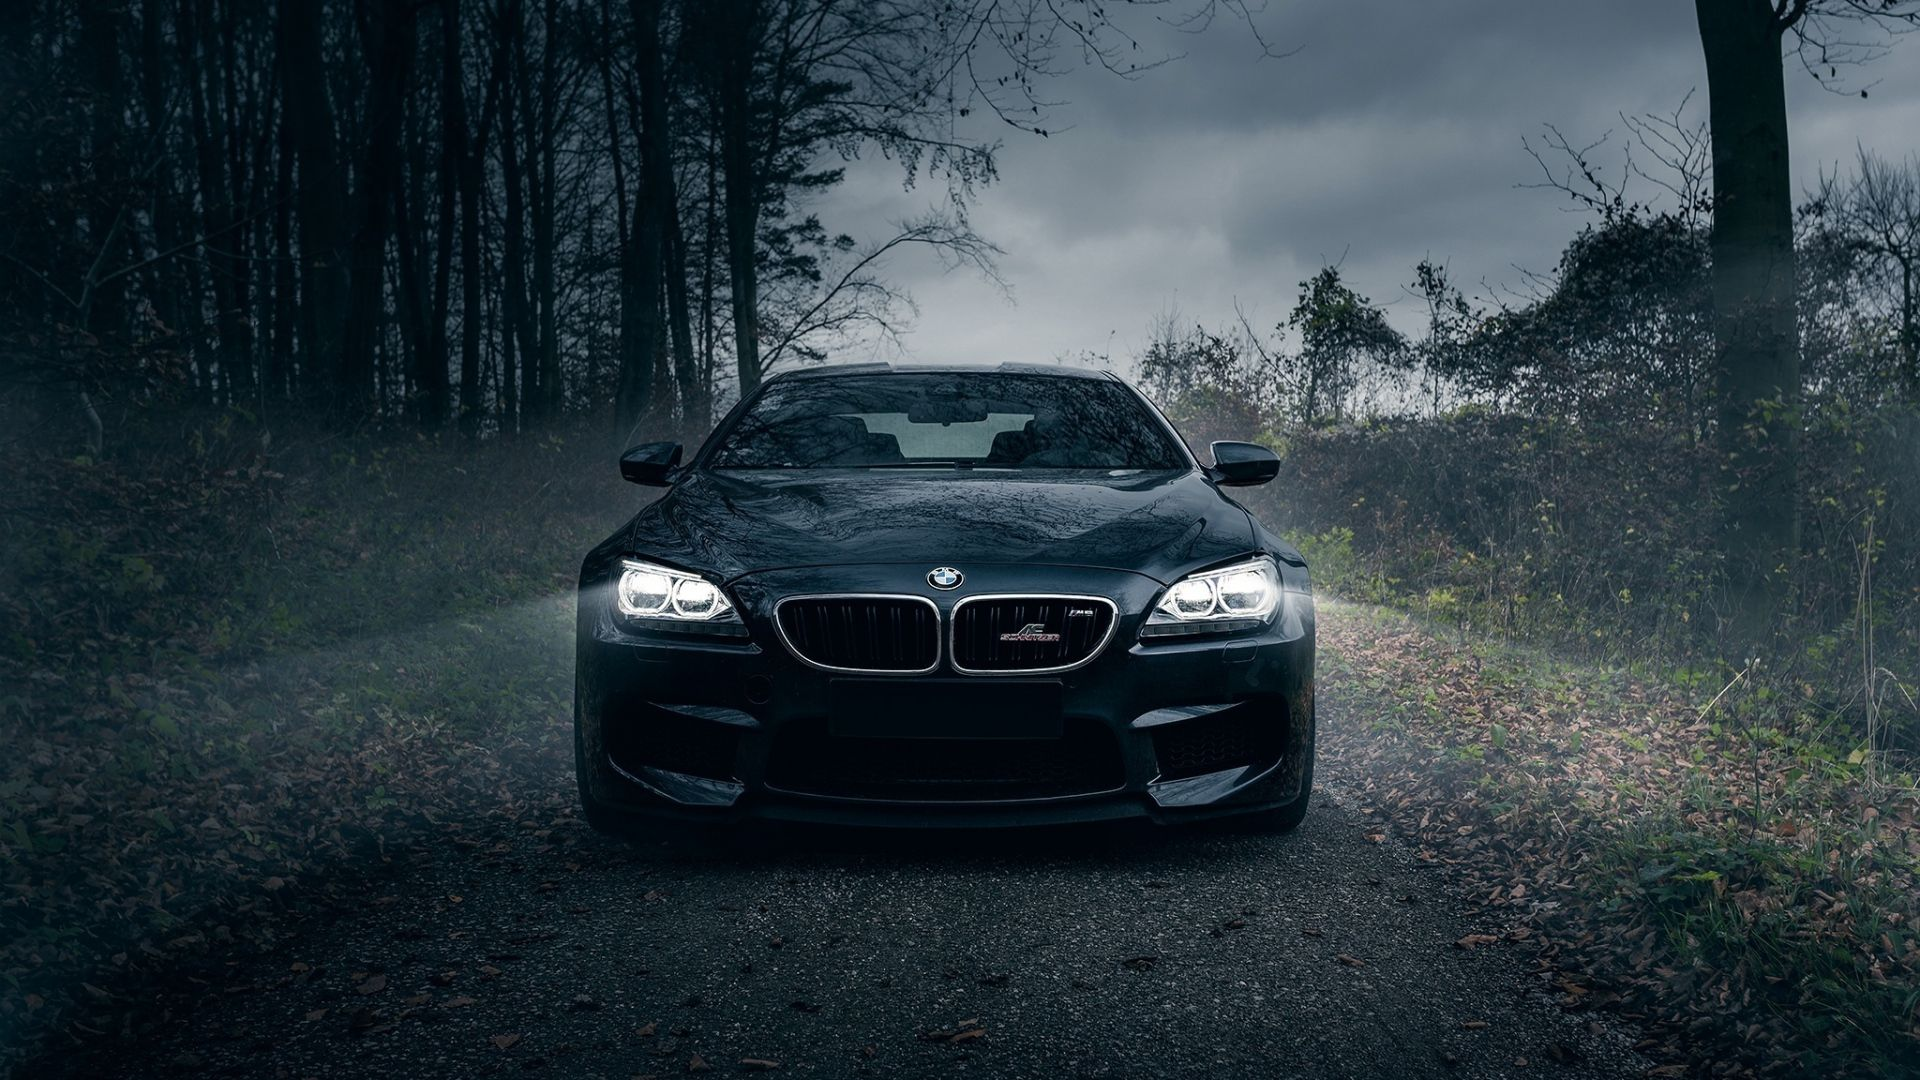 bmw m6 dark | bmw wallpapers | pinterest | bmw m6, bmw and cars